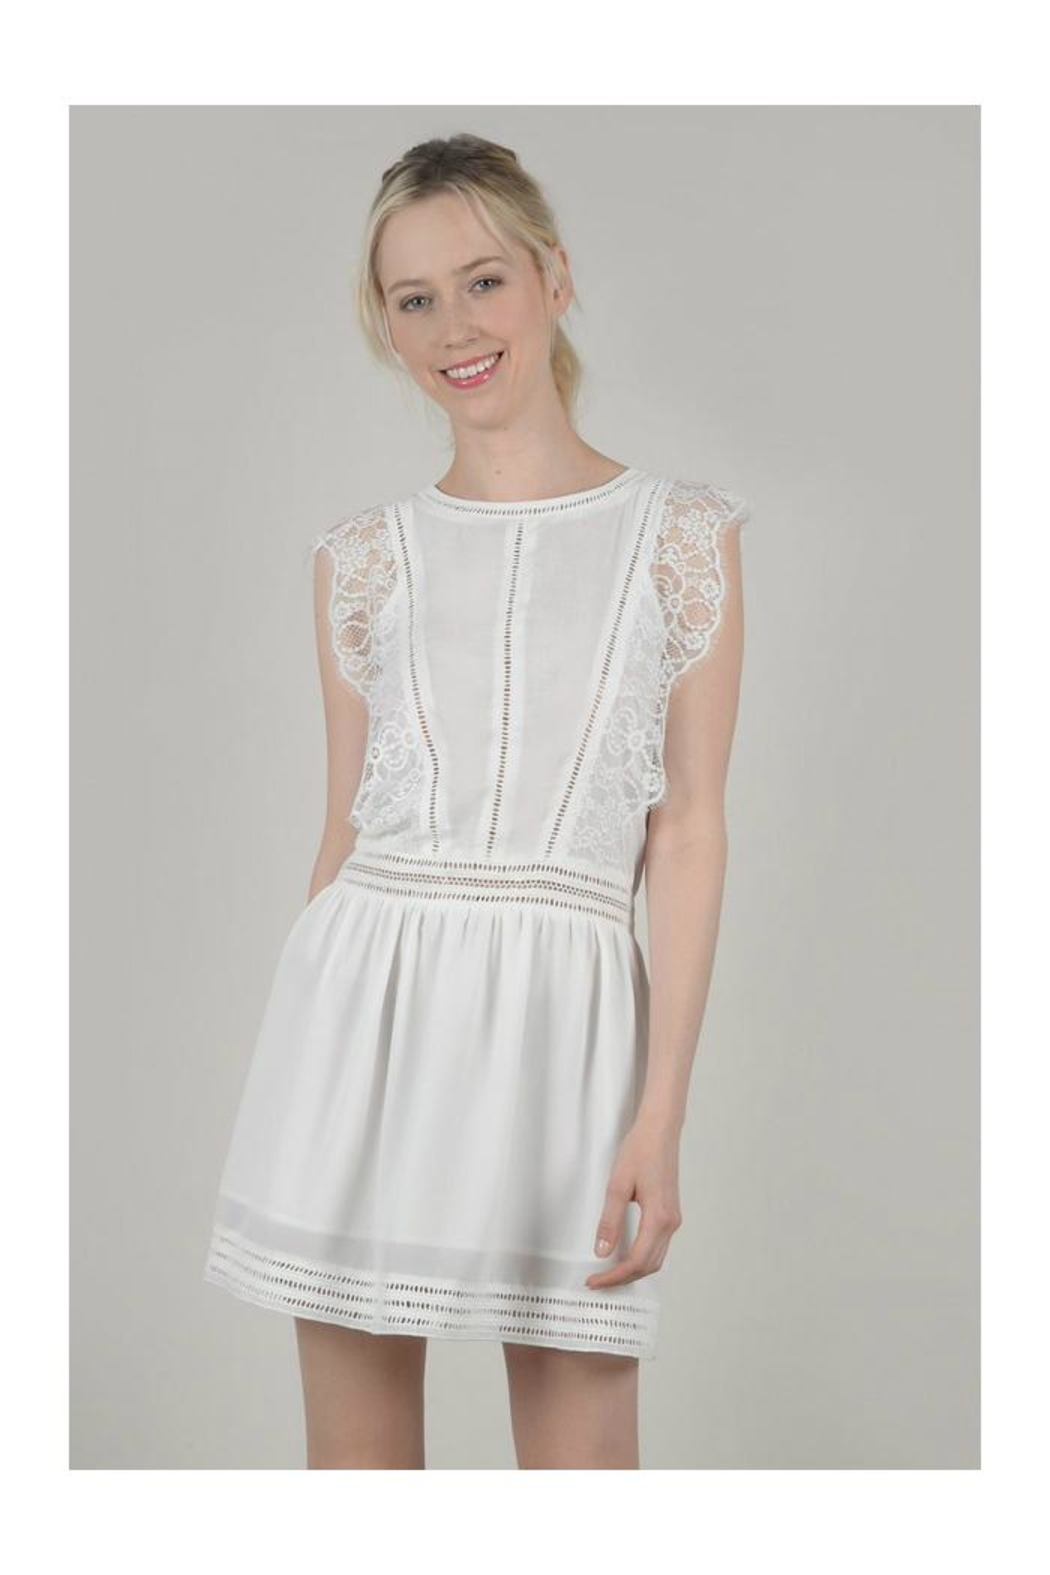 64729b02d5556 Molly Bracken White Lace Dress from Wisconsin by Tres Belle — Shoptiques